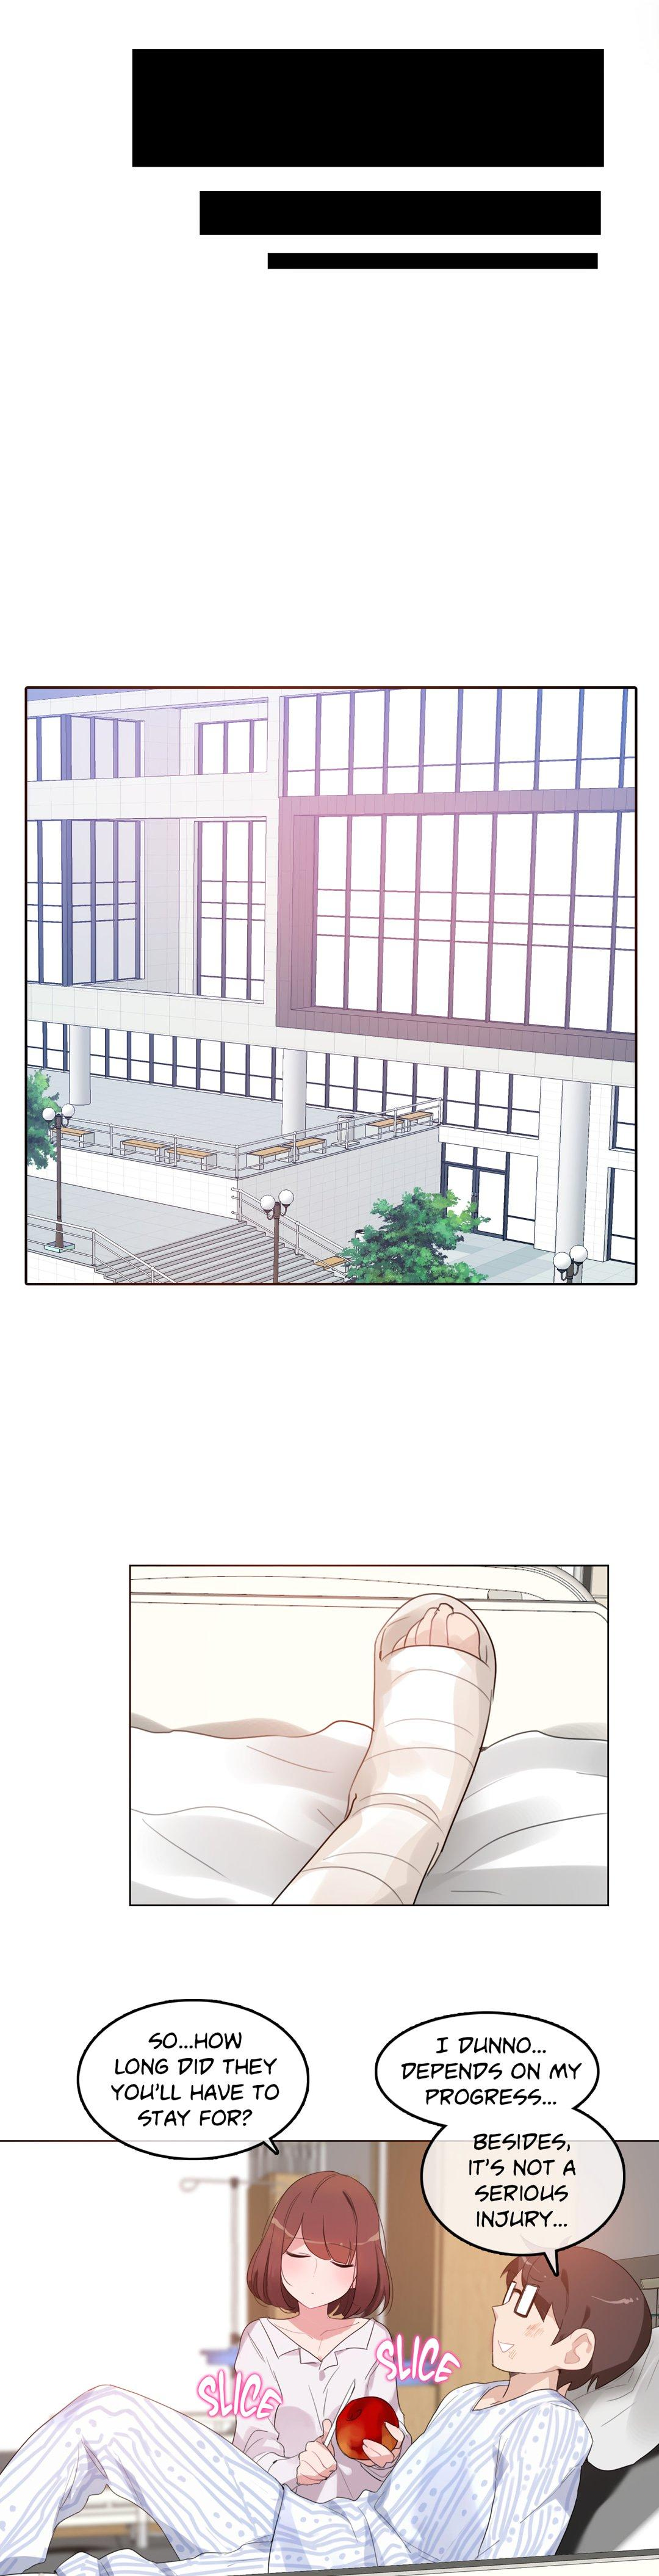 A Pervert's Daily Life Ch. 35-71 242